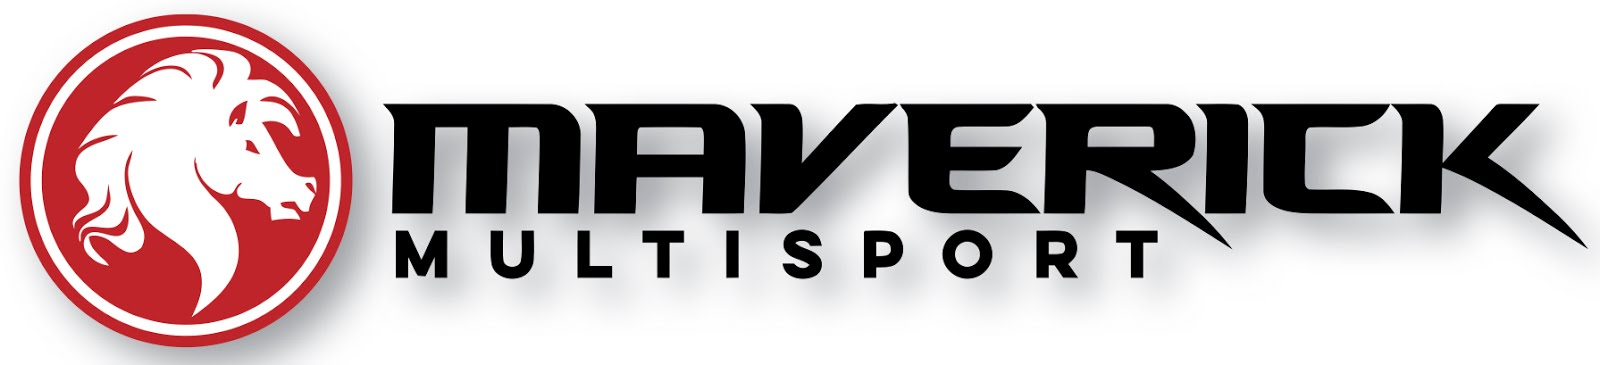 Team Maverick Multisport